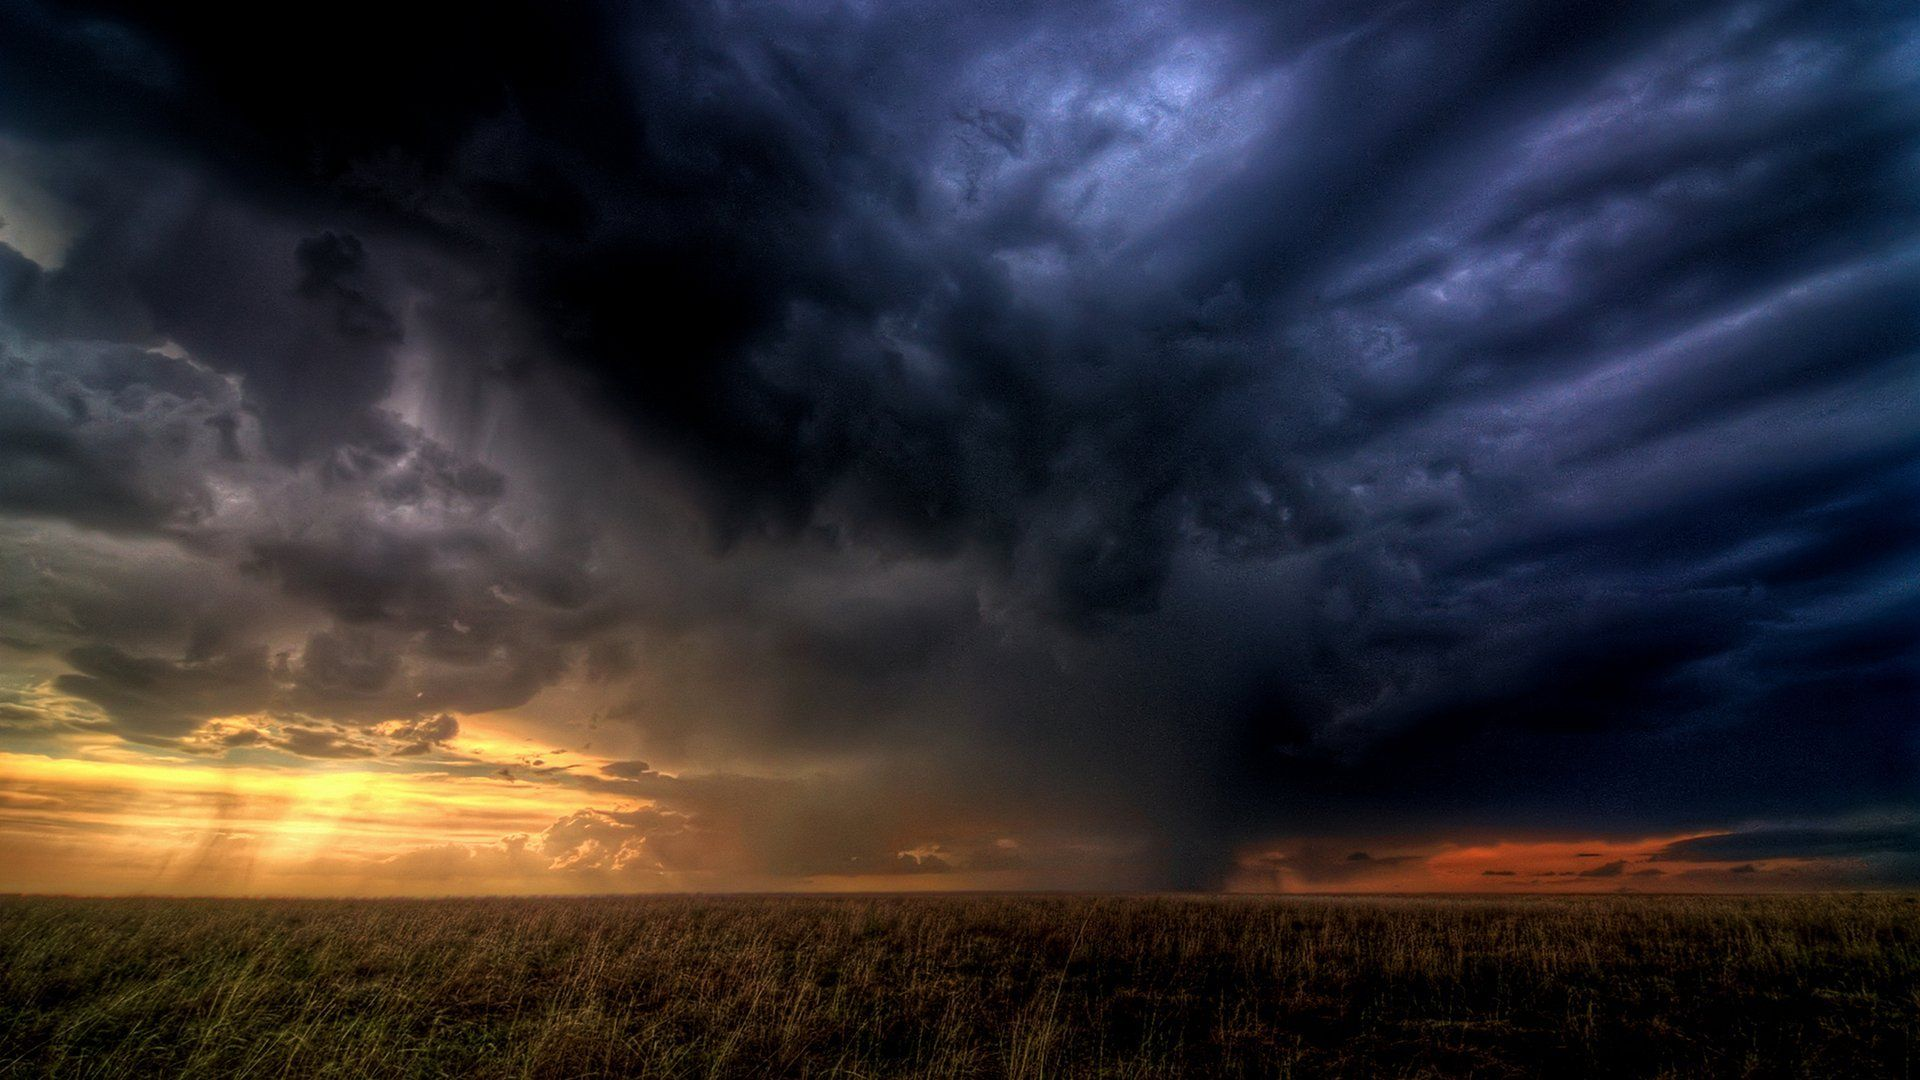 In The Past 20 Years, Over 600,000 People Have Died In Weather-Related Disasters